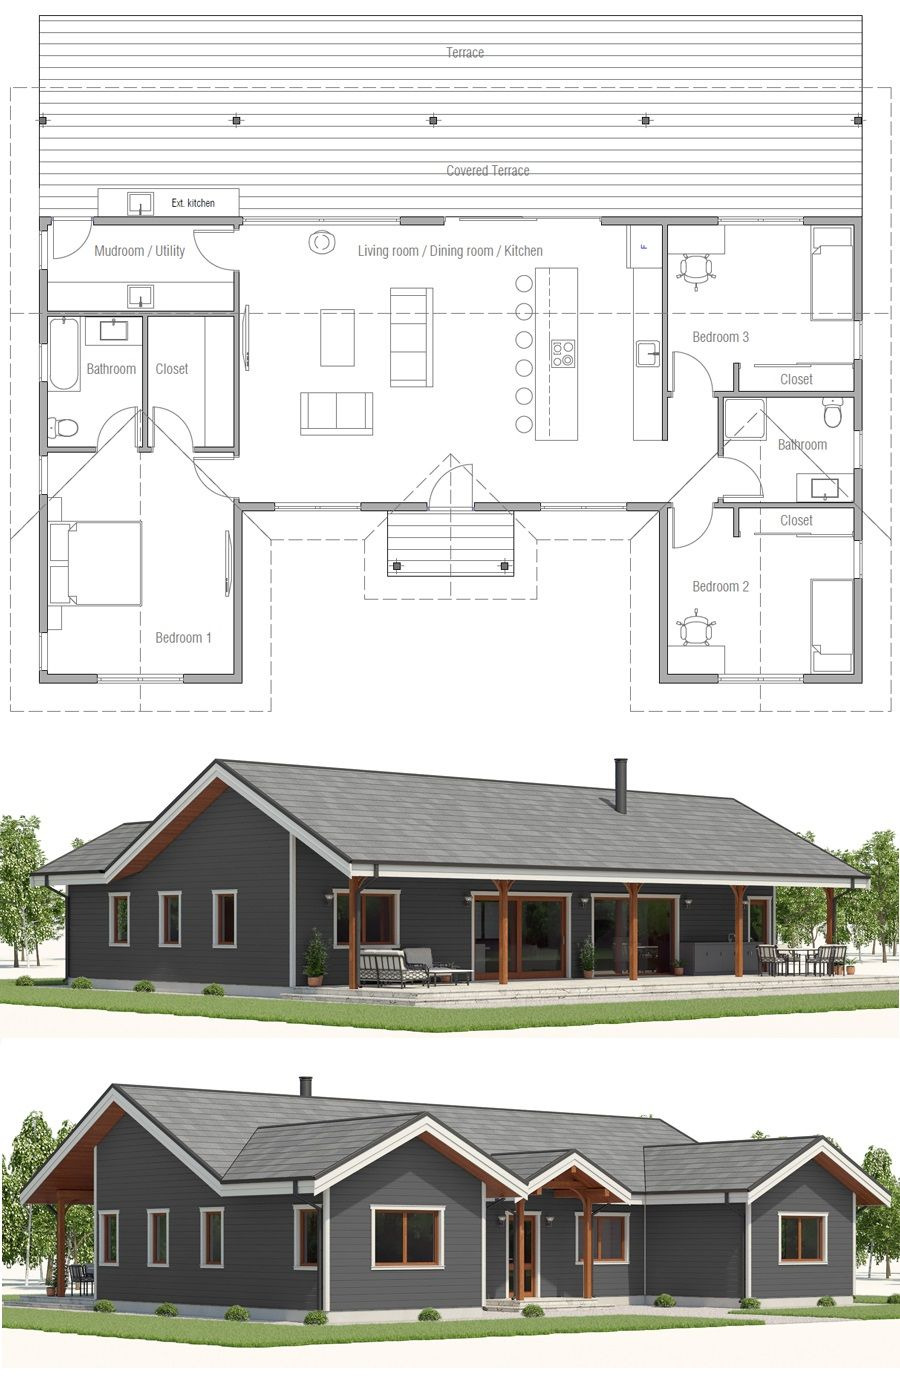 House Plans for Metal Buildings Awesome Floor Plans Floorplans I Like This Basic Set Up